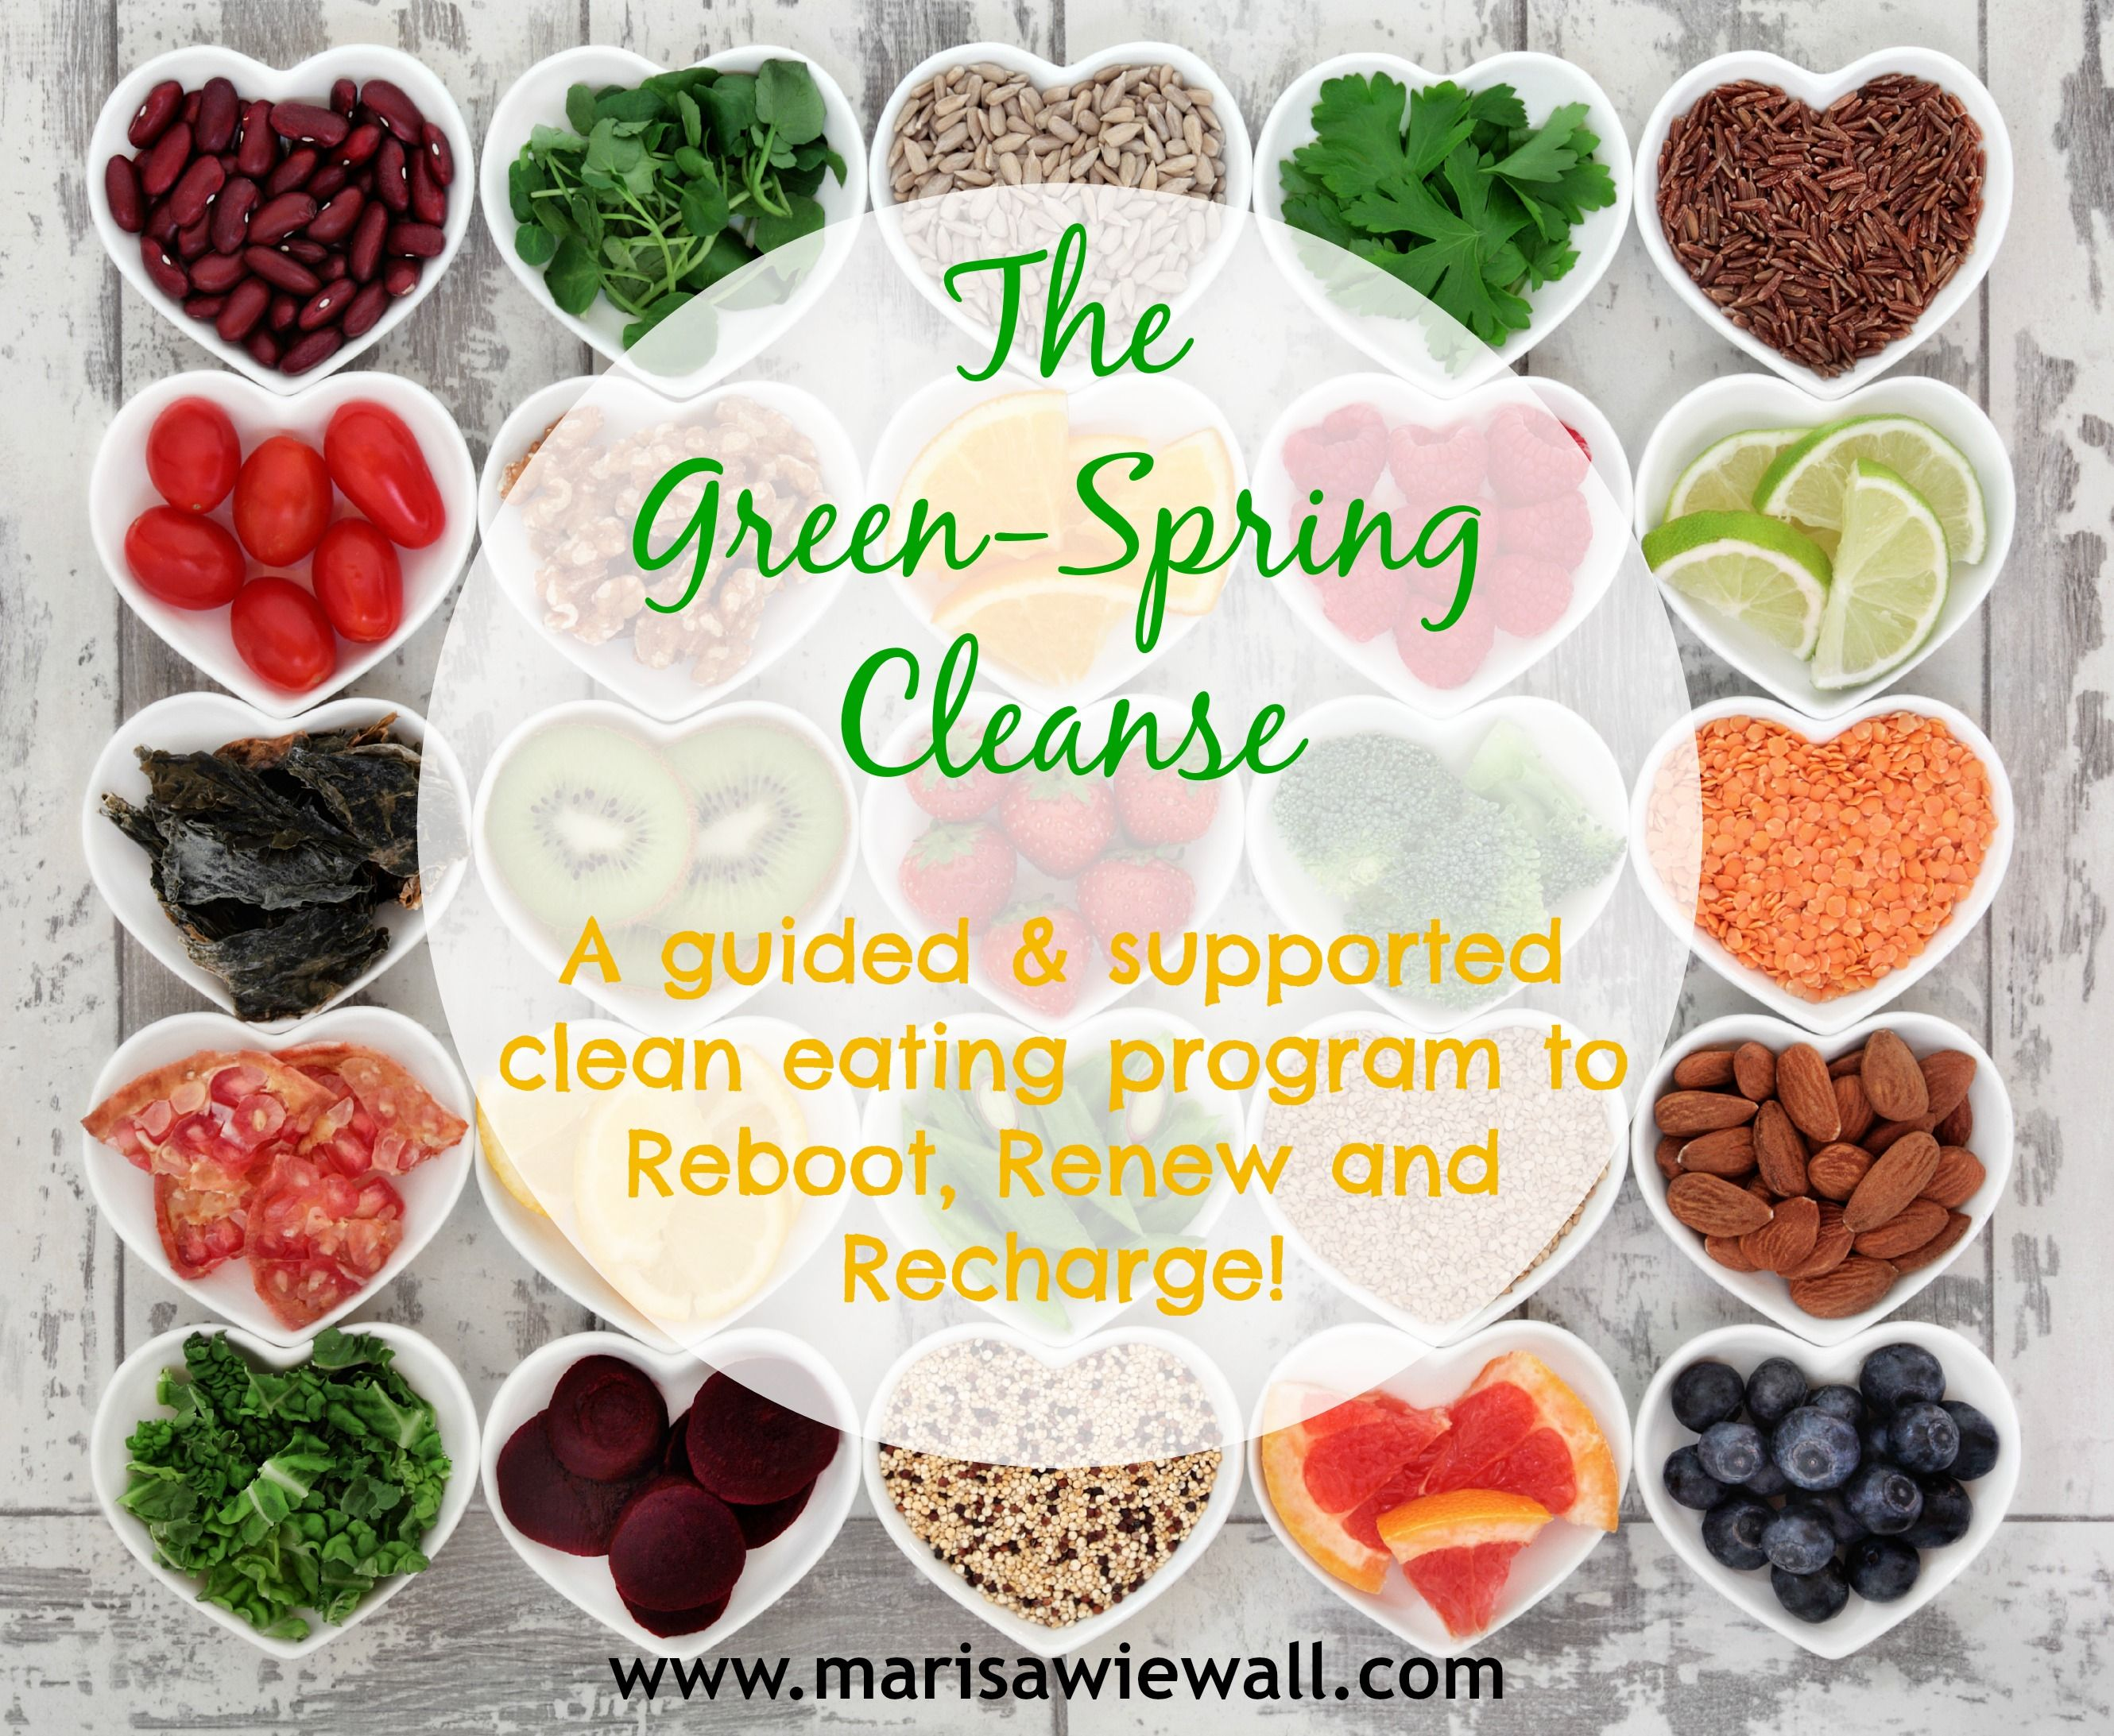 Join me and the group for this 14-day Spring Clean adventure! www.marisawiewall.com/spring-cleanse